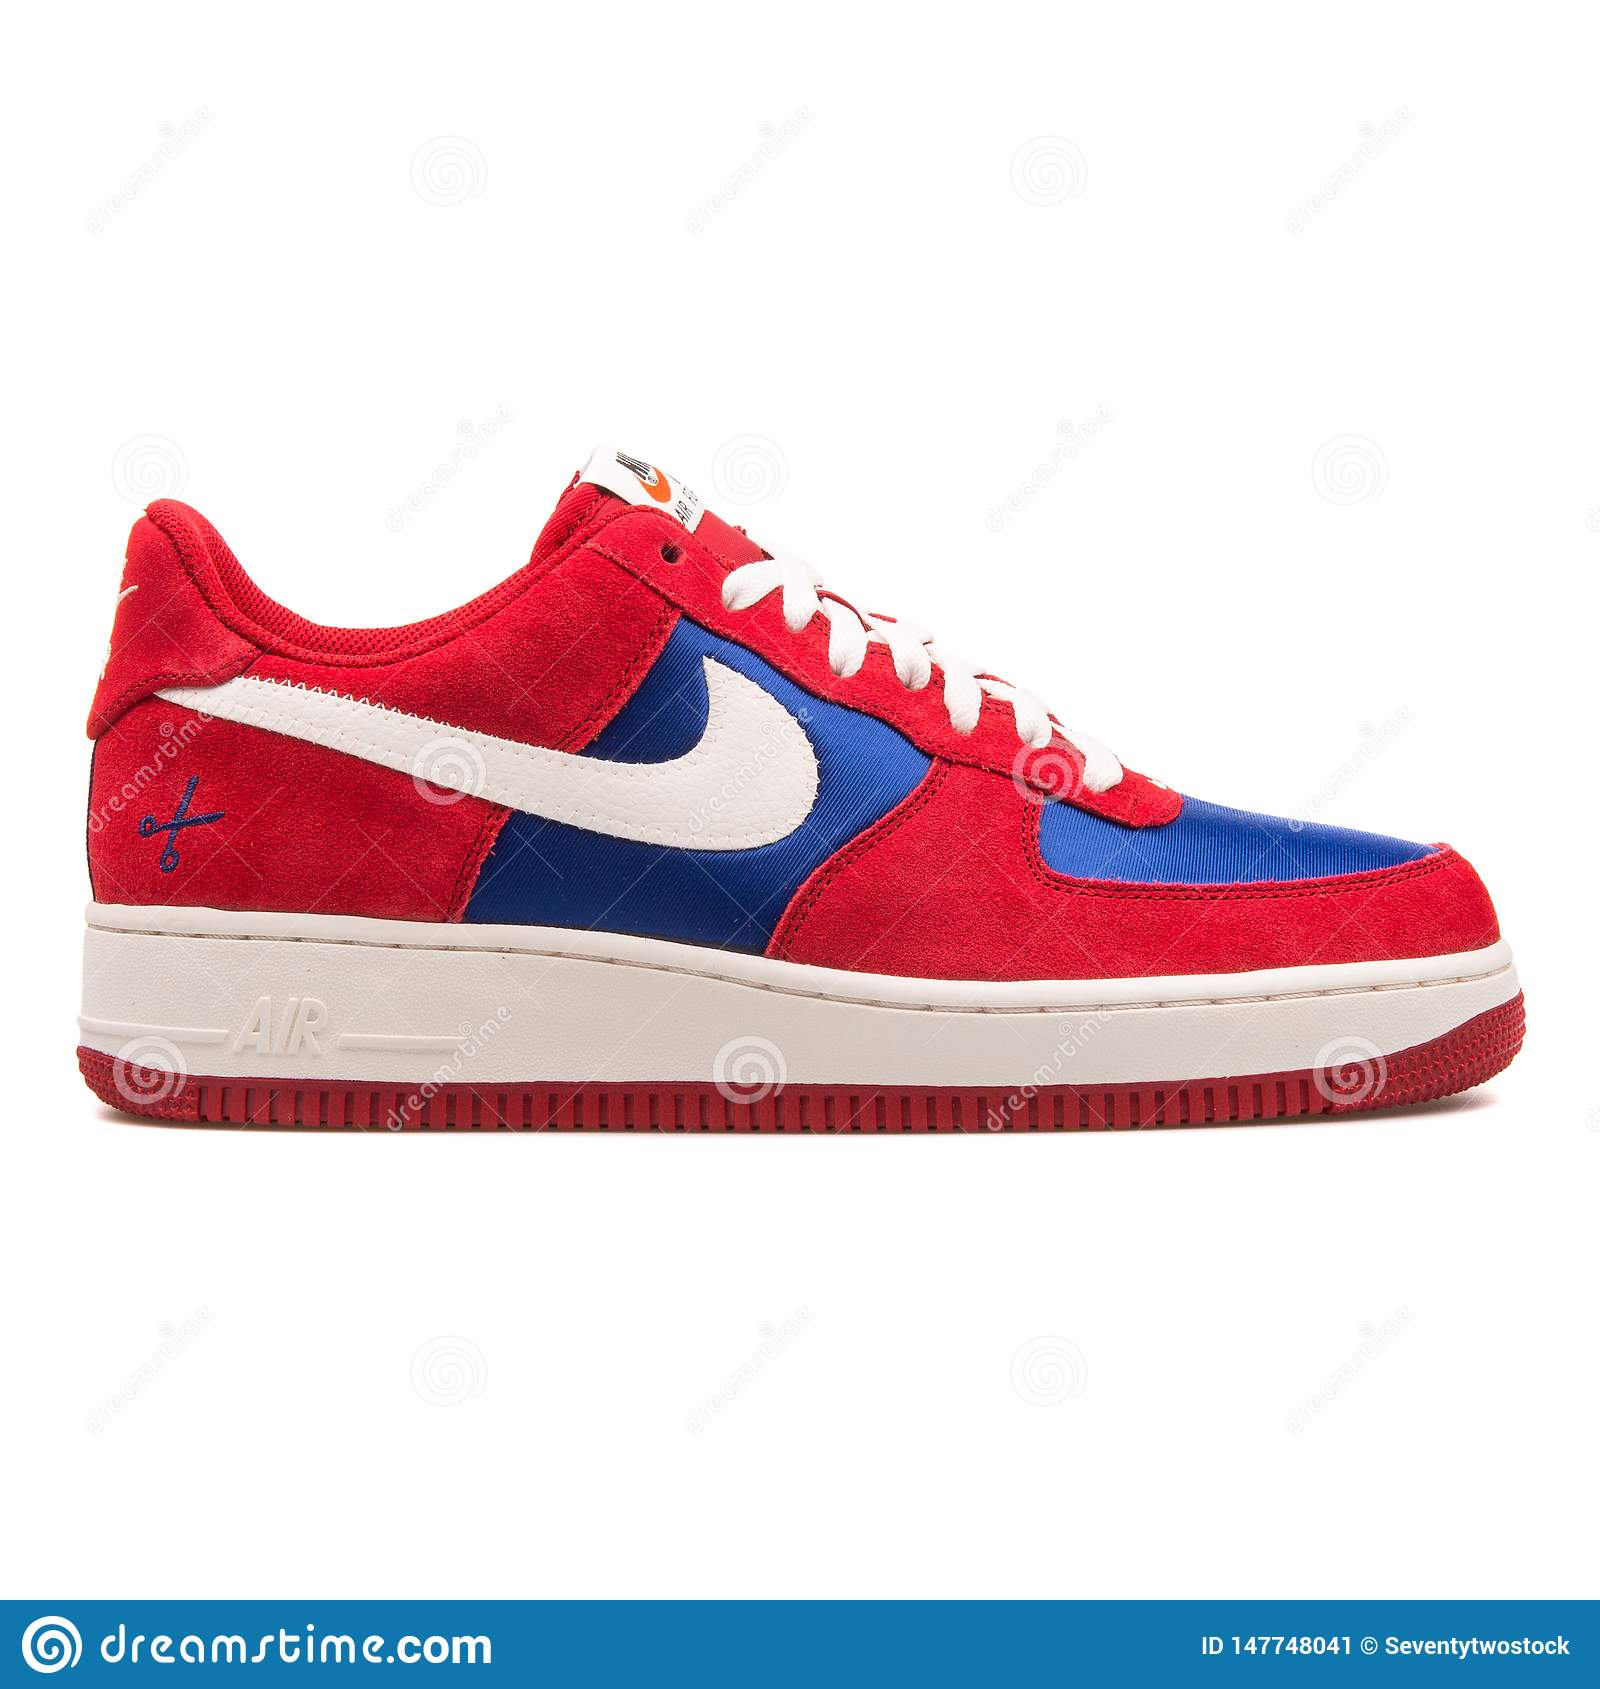 air force 1 red and blue